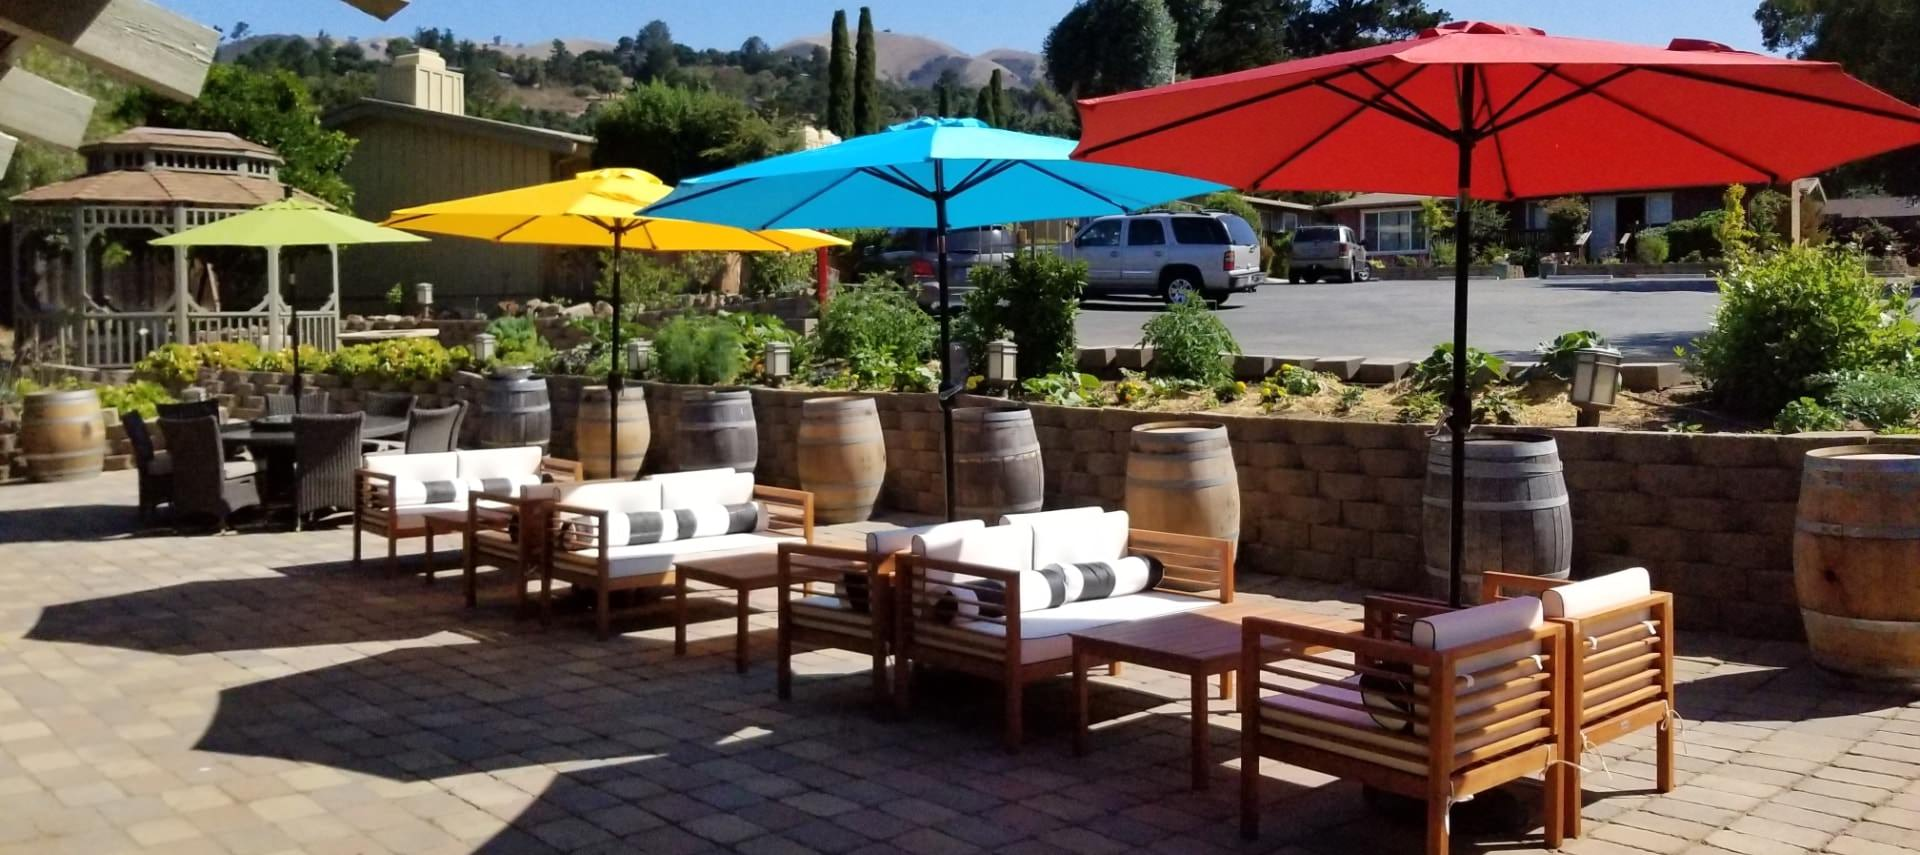 Large patio space with multiple seating options and red, yellow, blue, and green umbrellas